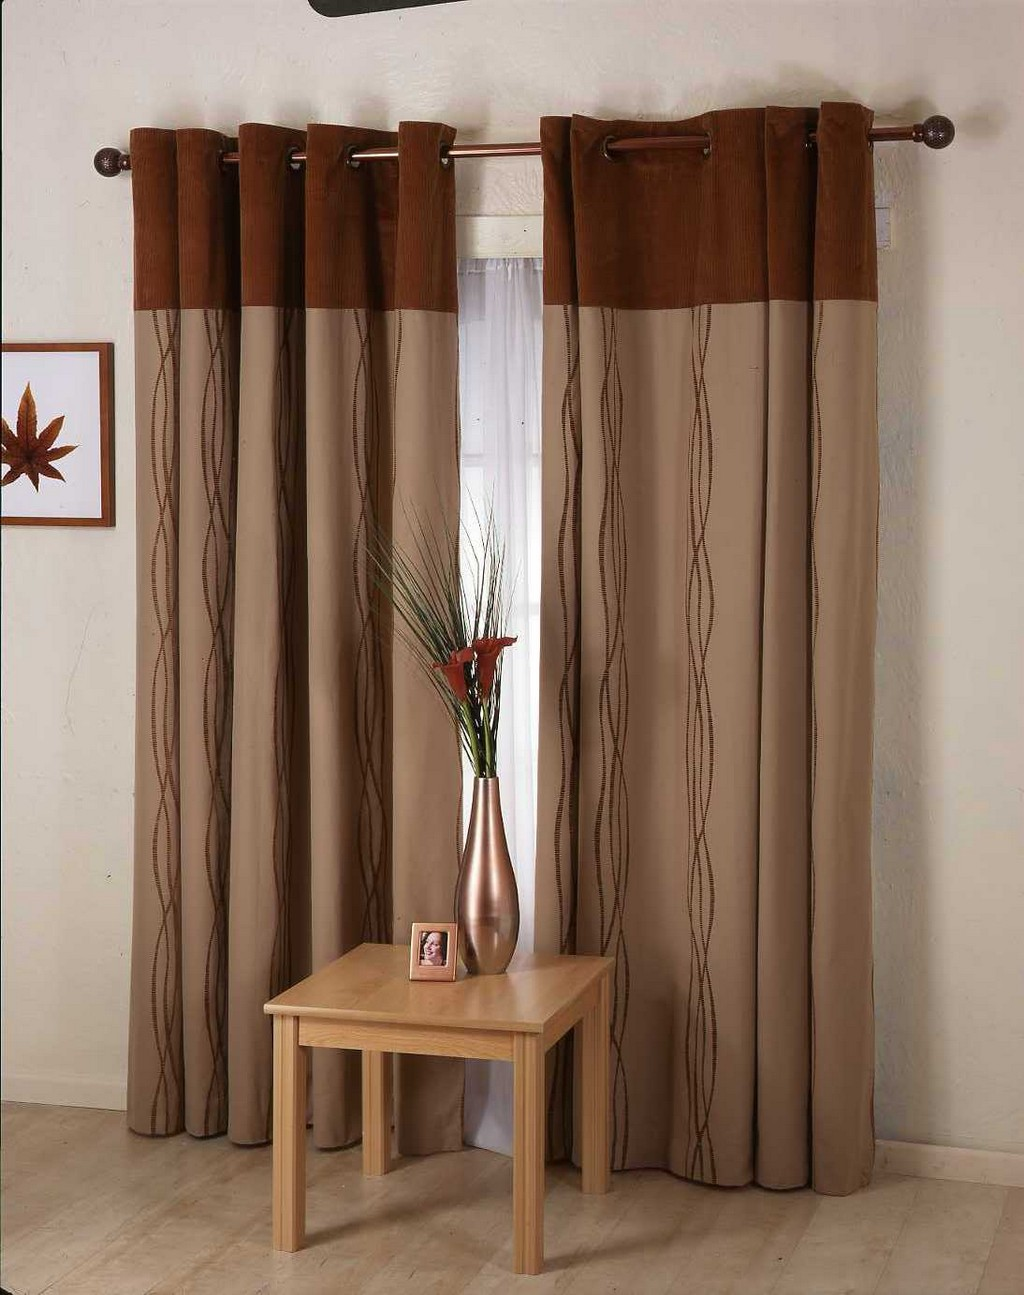 lavender kitchen curtains, waverly kitchen curtains, bamboo curtain rods, country curtain catalog